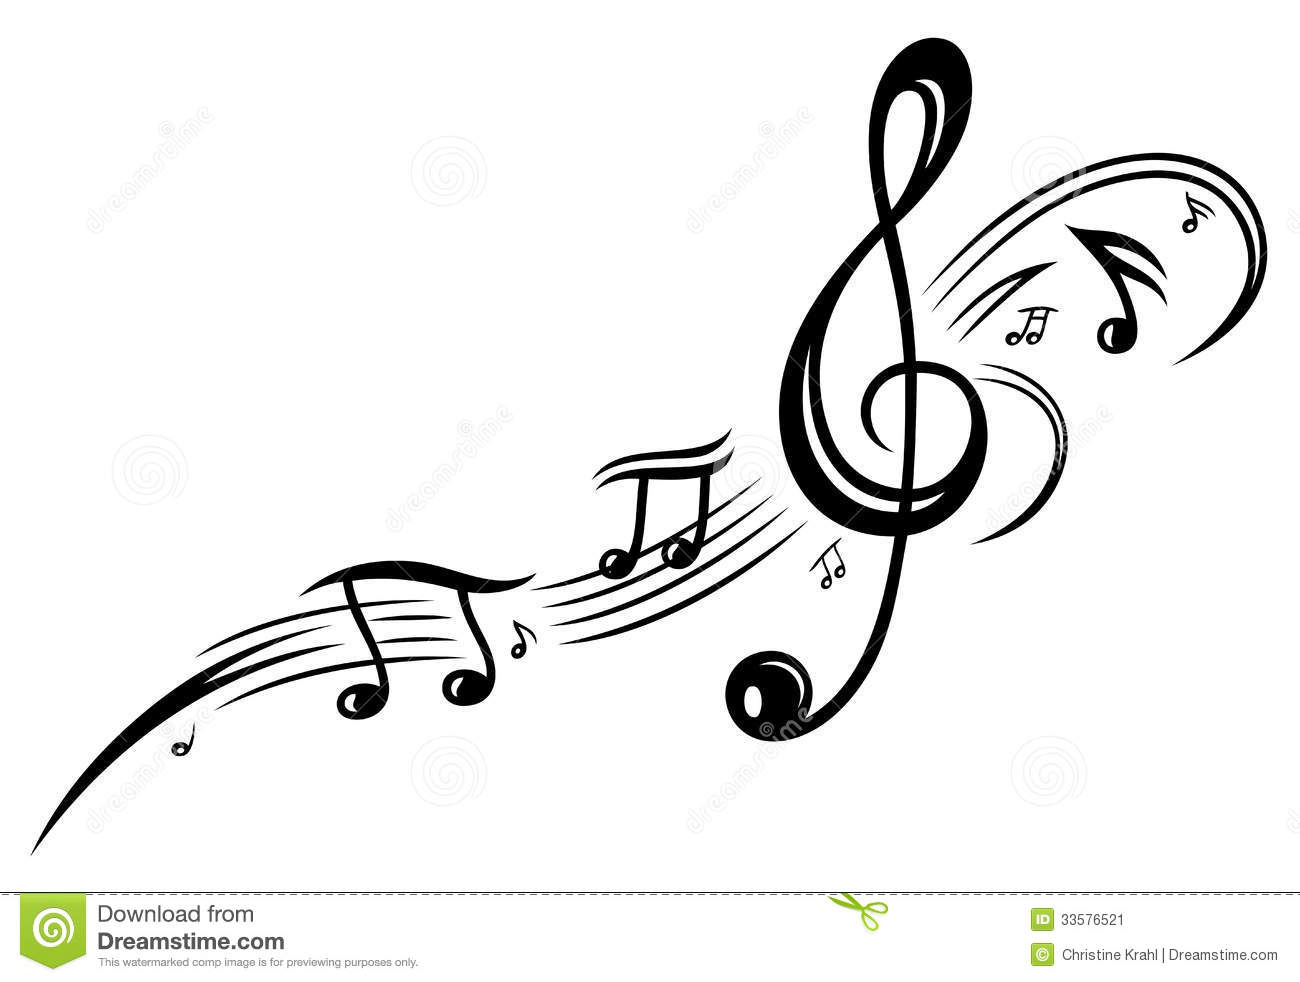 Music, music notes, clef stock vector. Illustration of